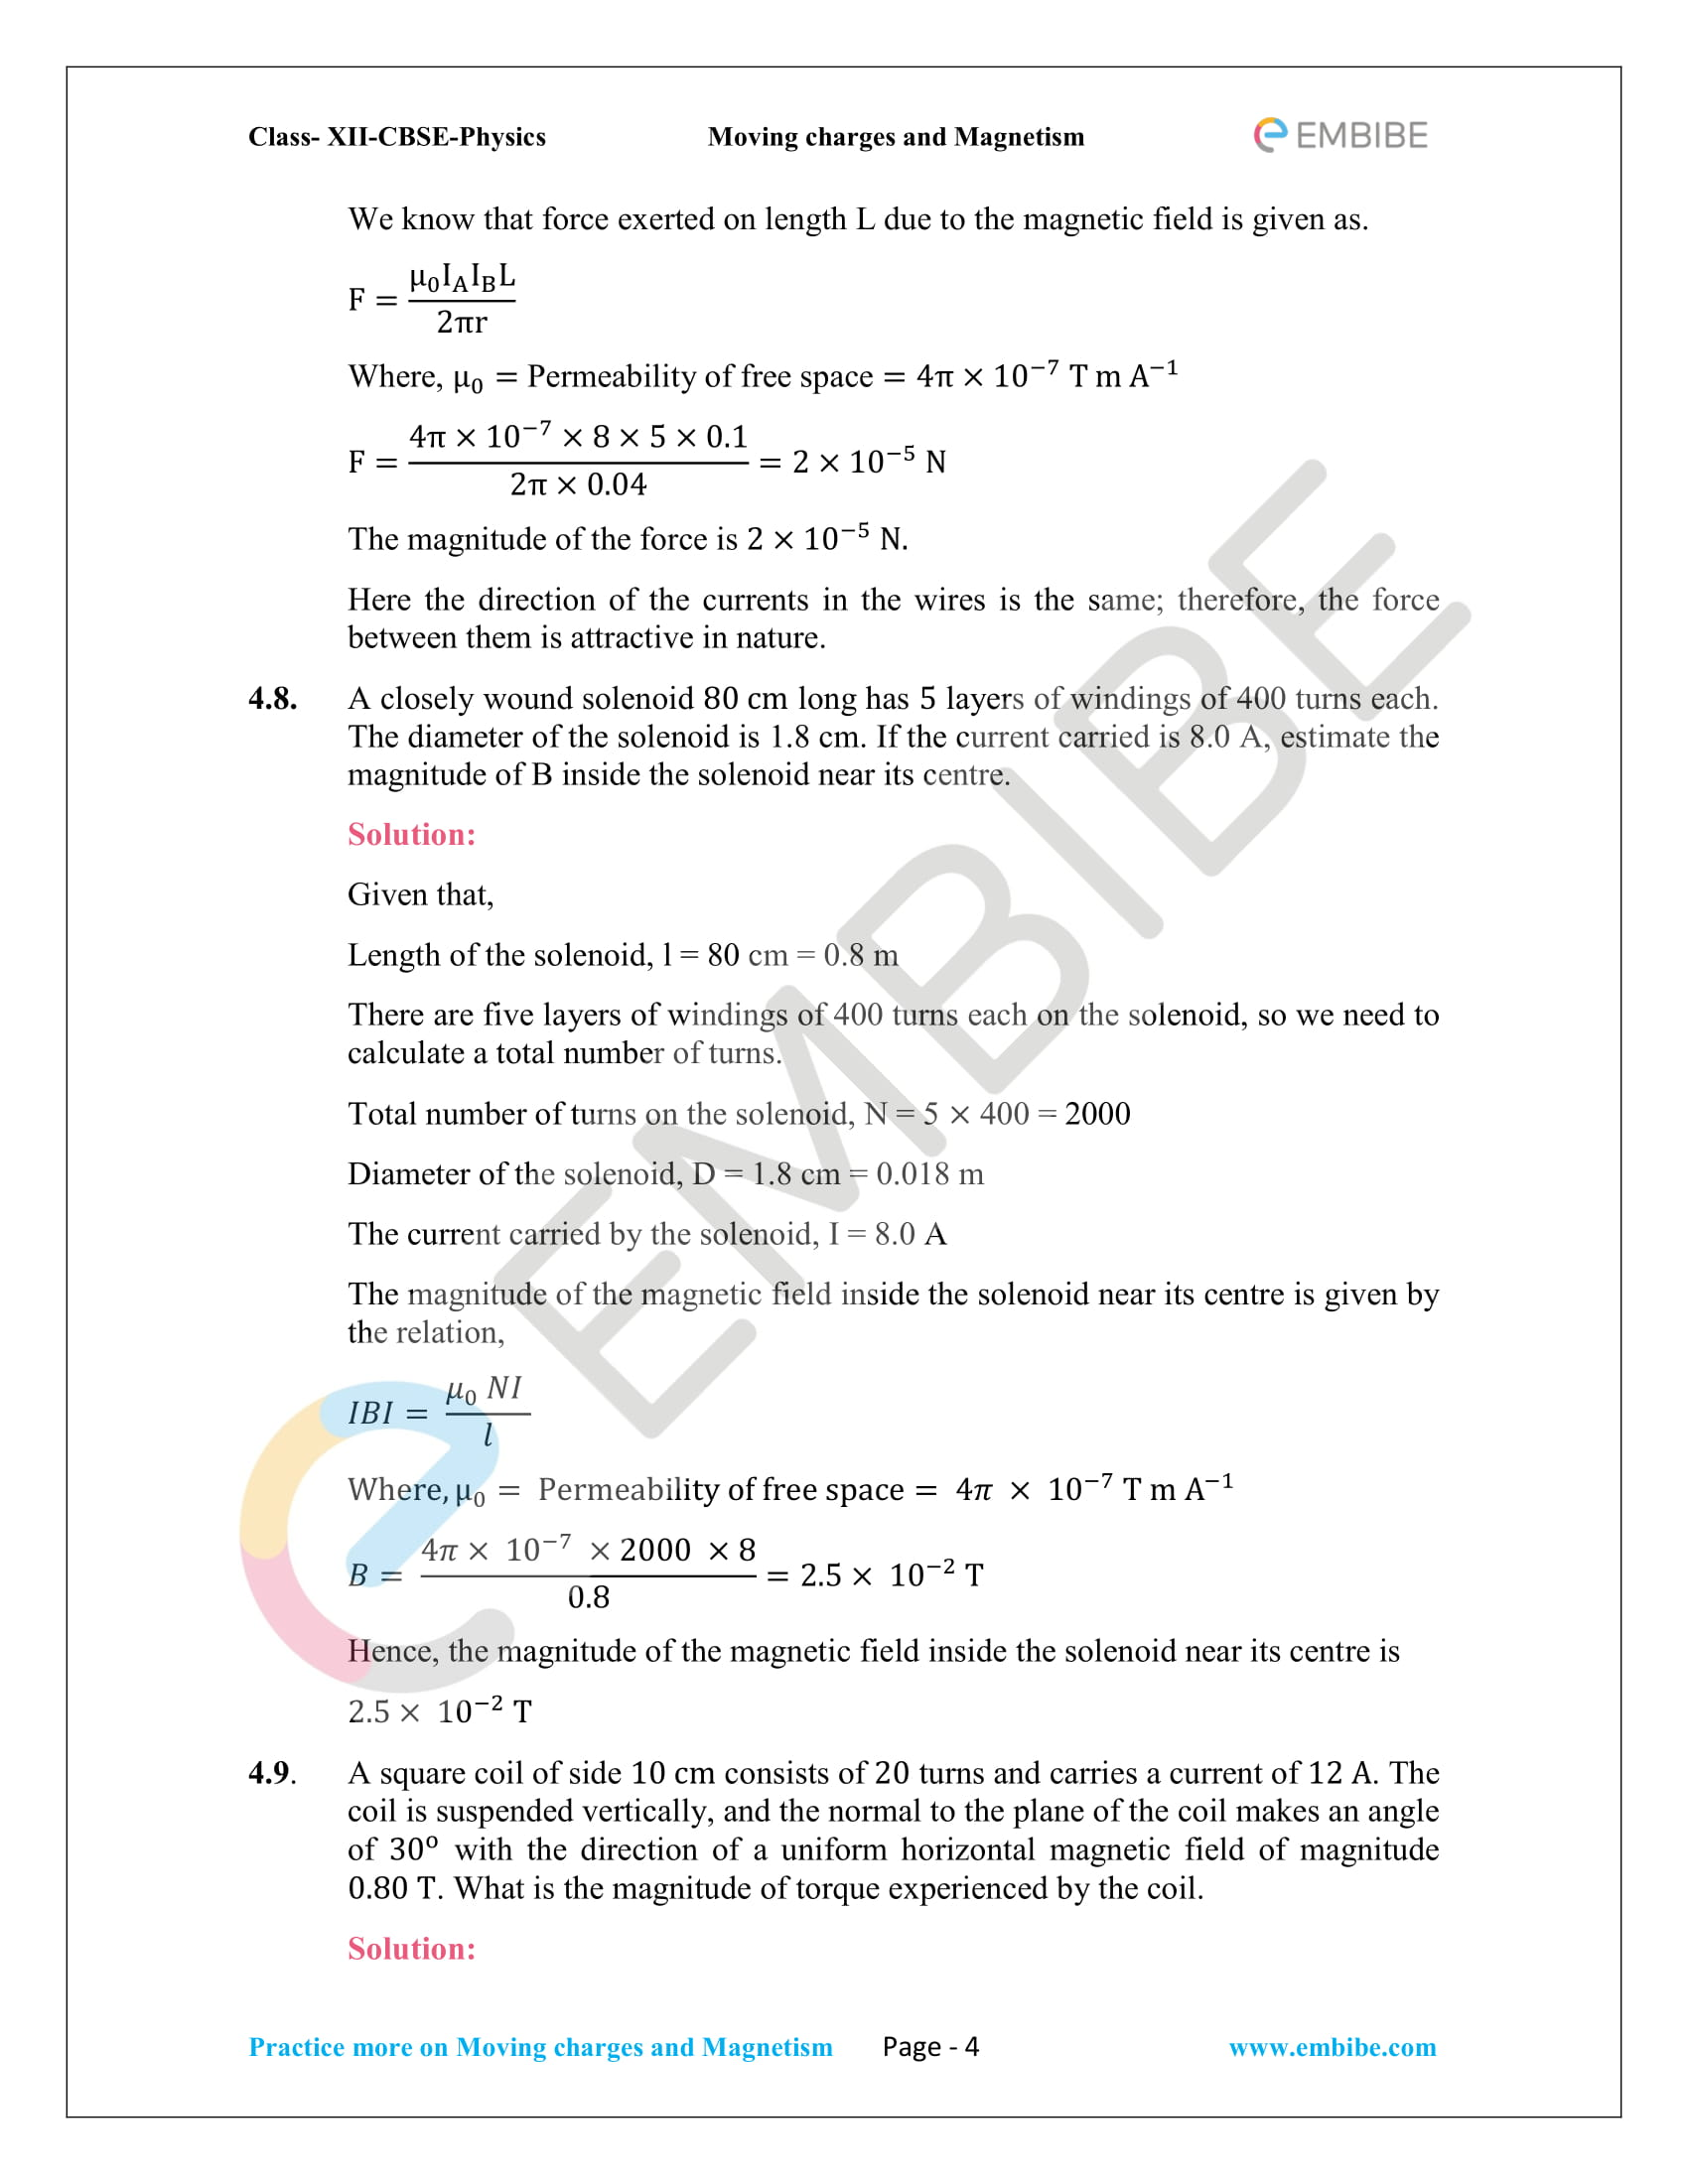 NCERT_Grade 12_Physics_Ch_04_Moving Charges and Magnetism-04